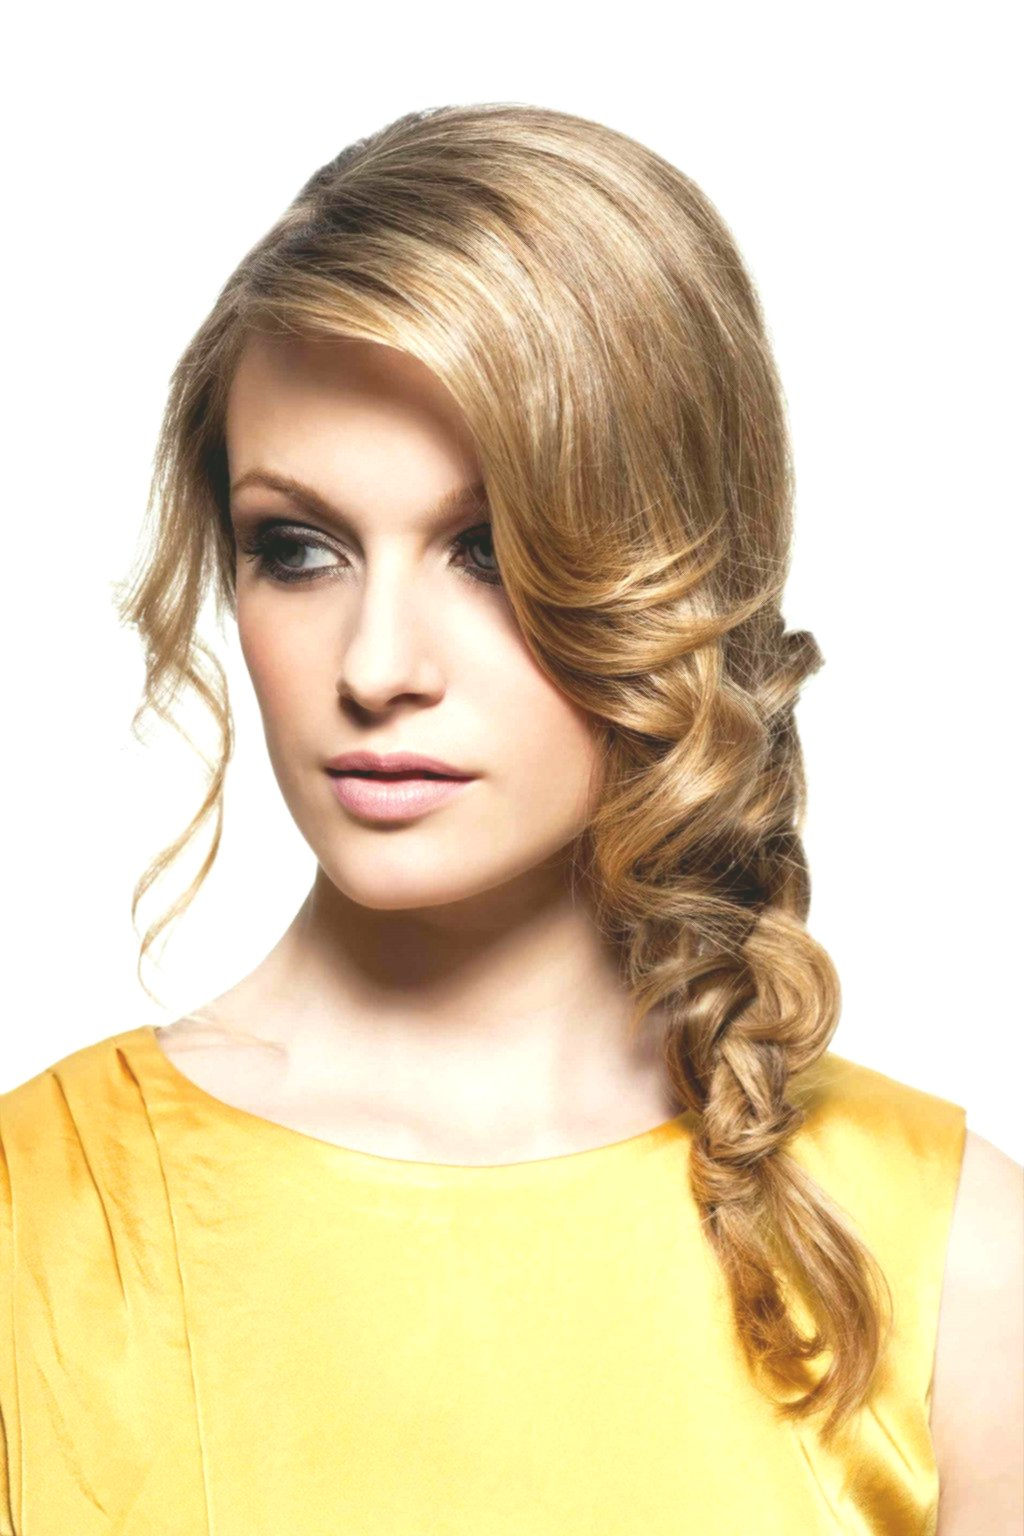 best of vidal hairstyle ideas-Modern Vidal Hairstyle Inspiration